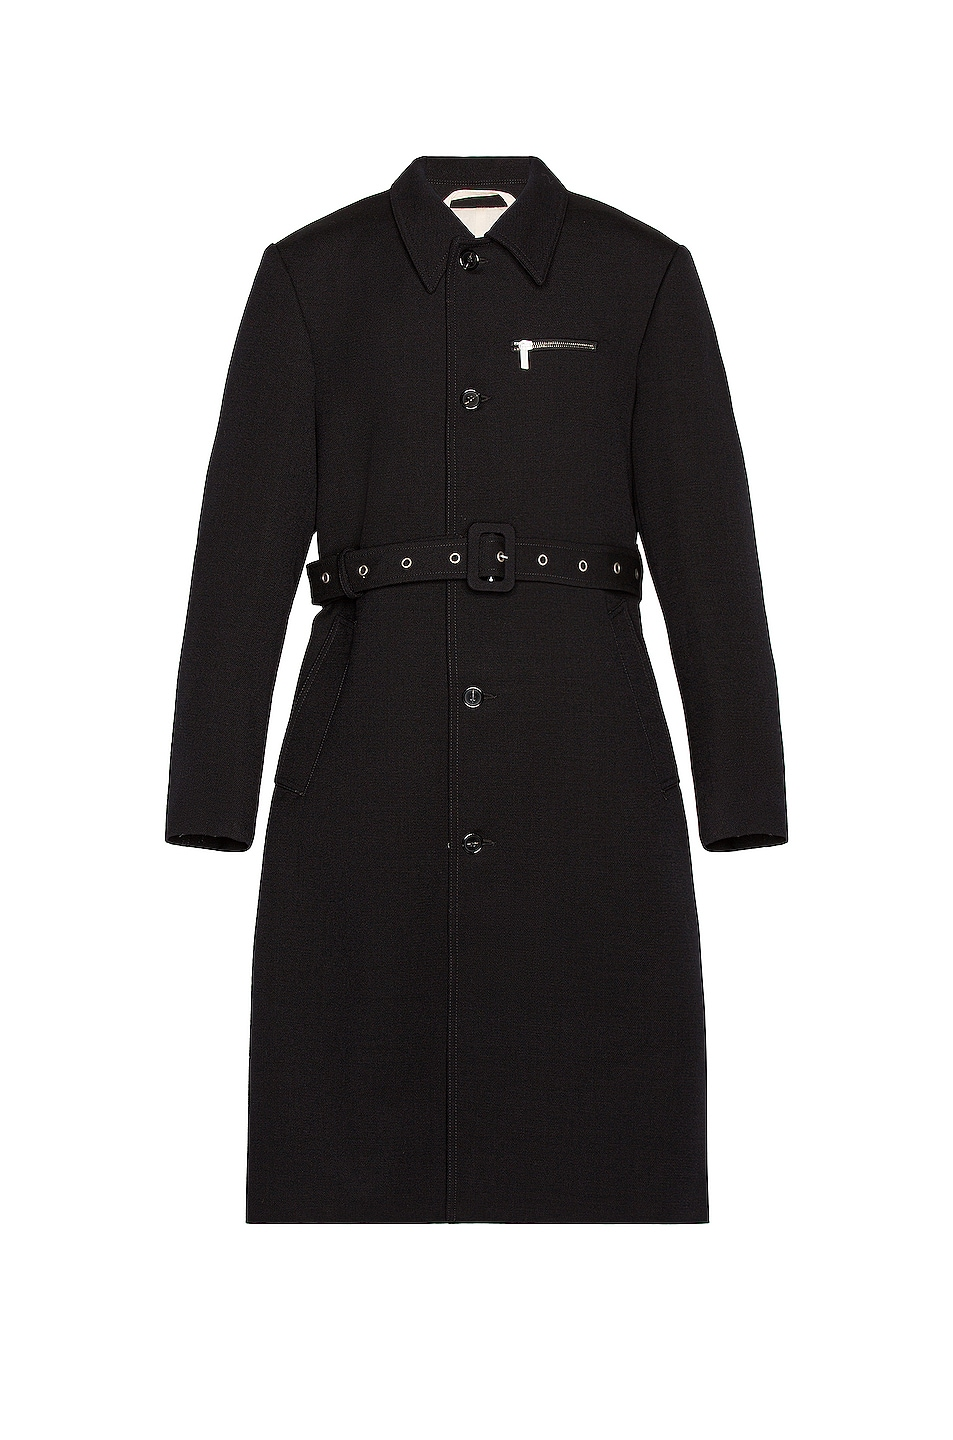 Image 1 of Raf Simons Slim Fit Trench Coat With Zipped Pockets in Dark Navy